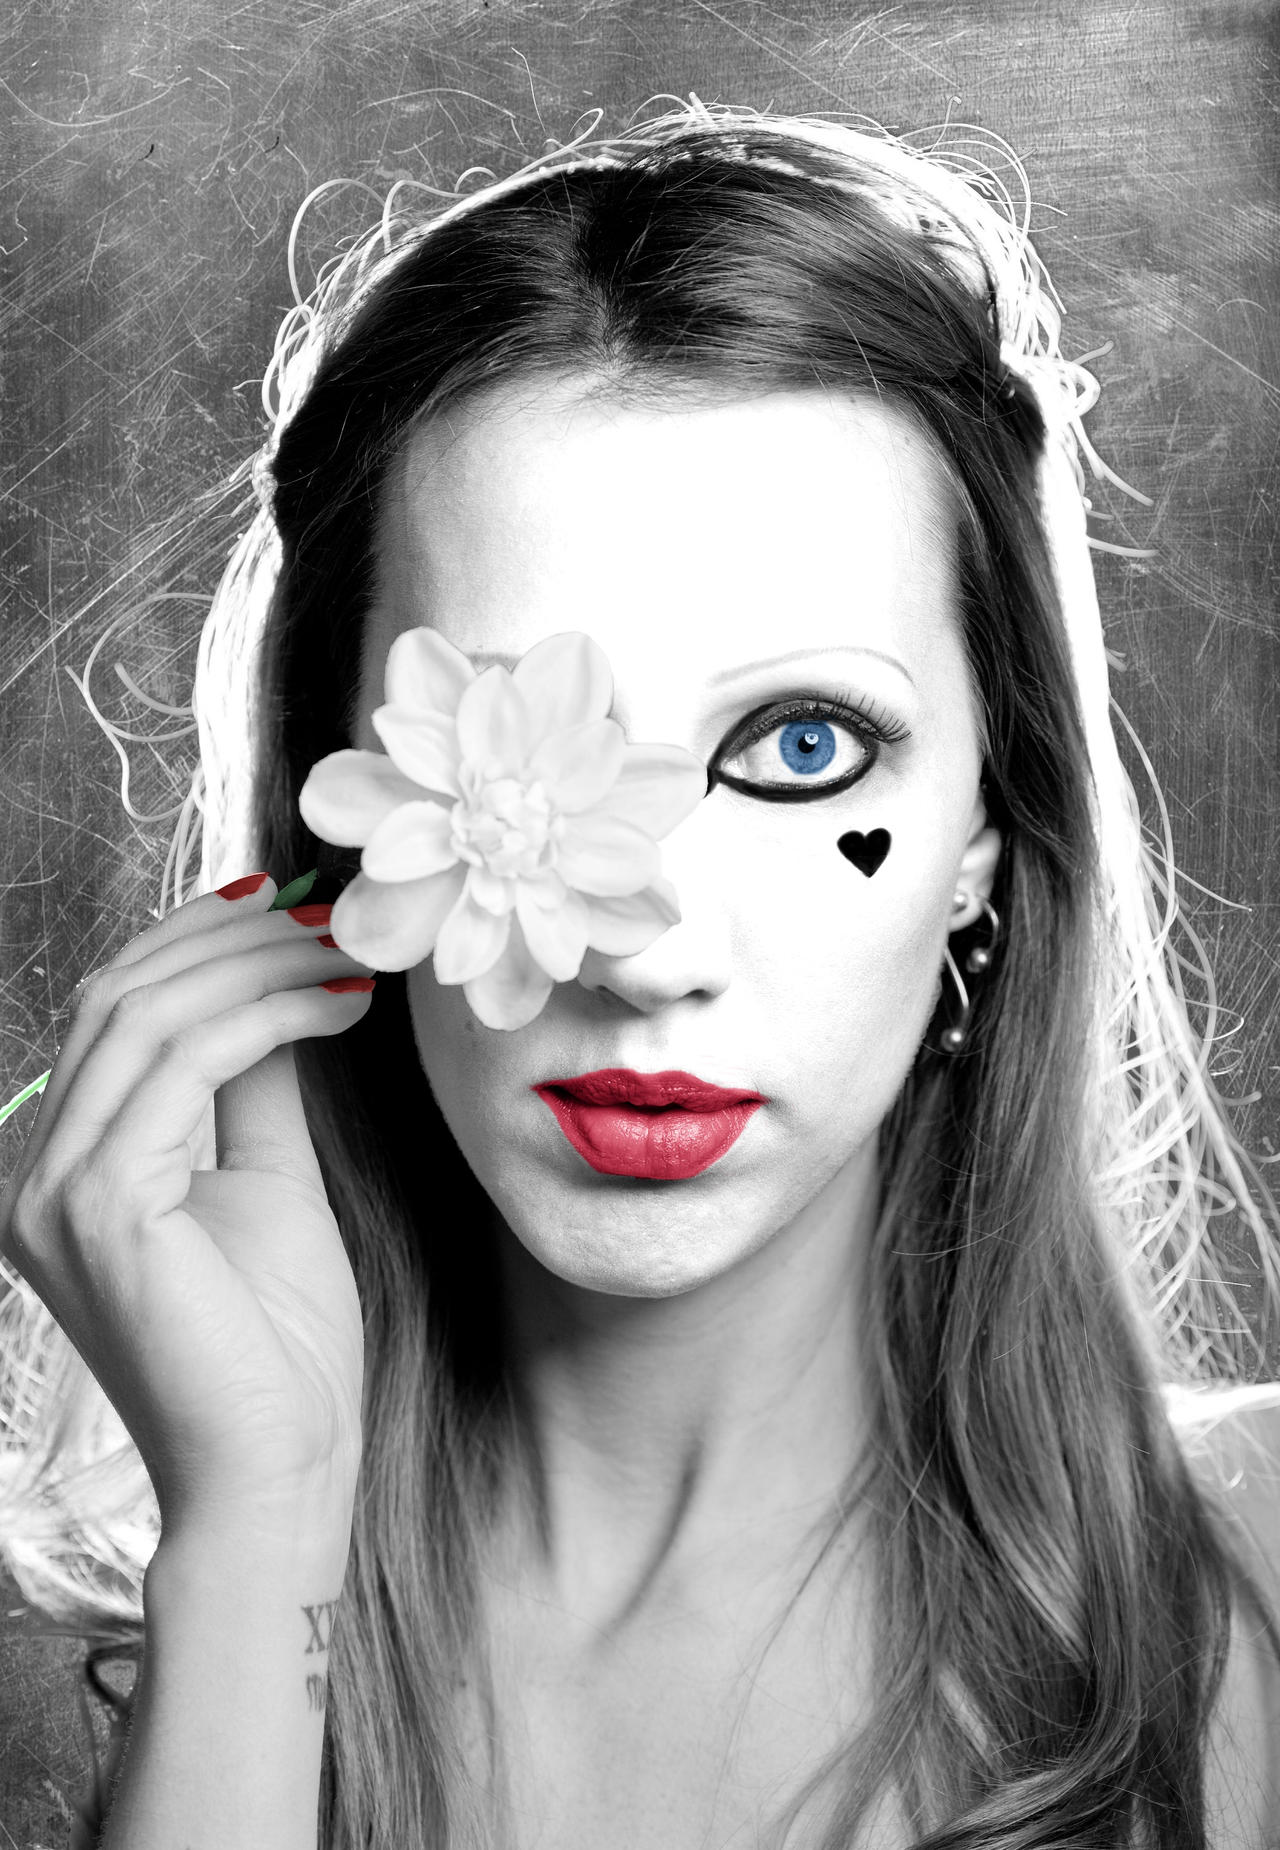 Details - The Mime by DrTofu83 on DeviantArt